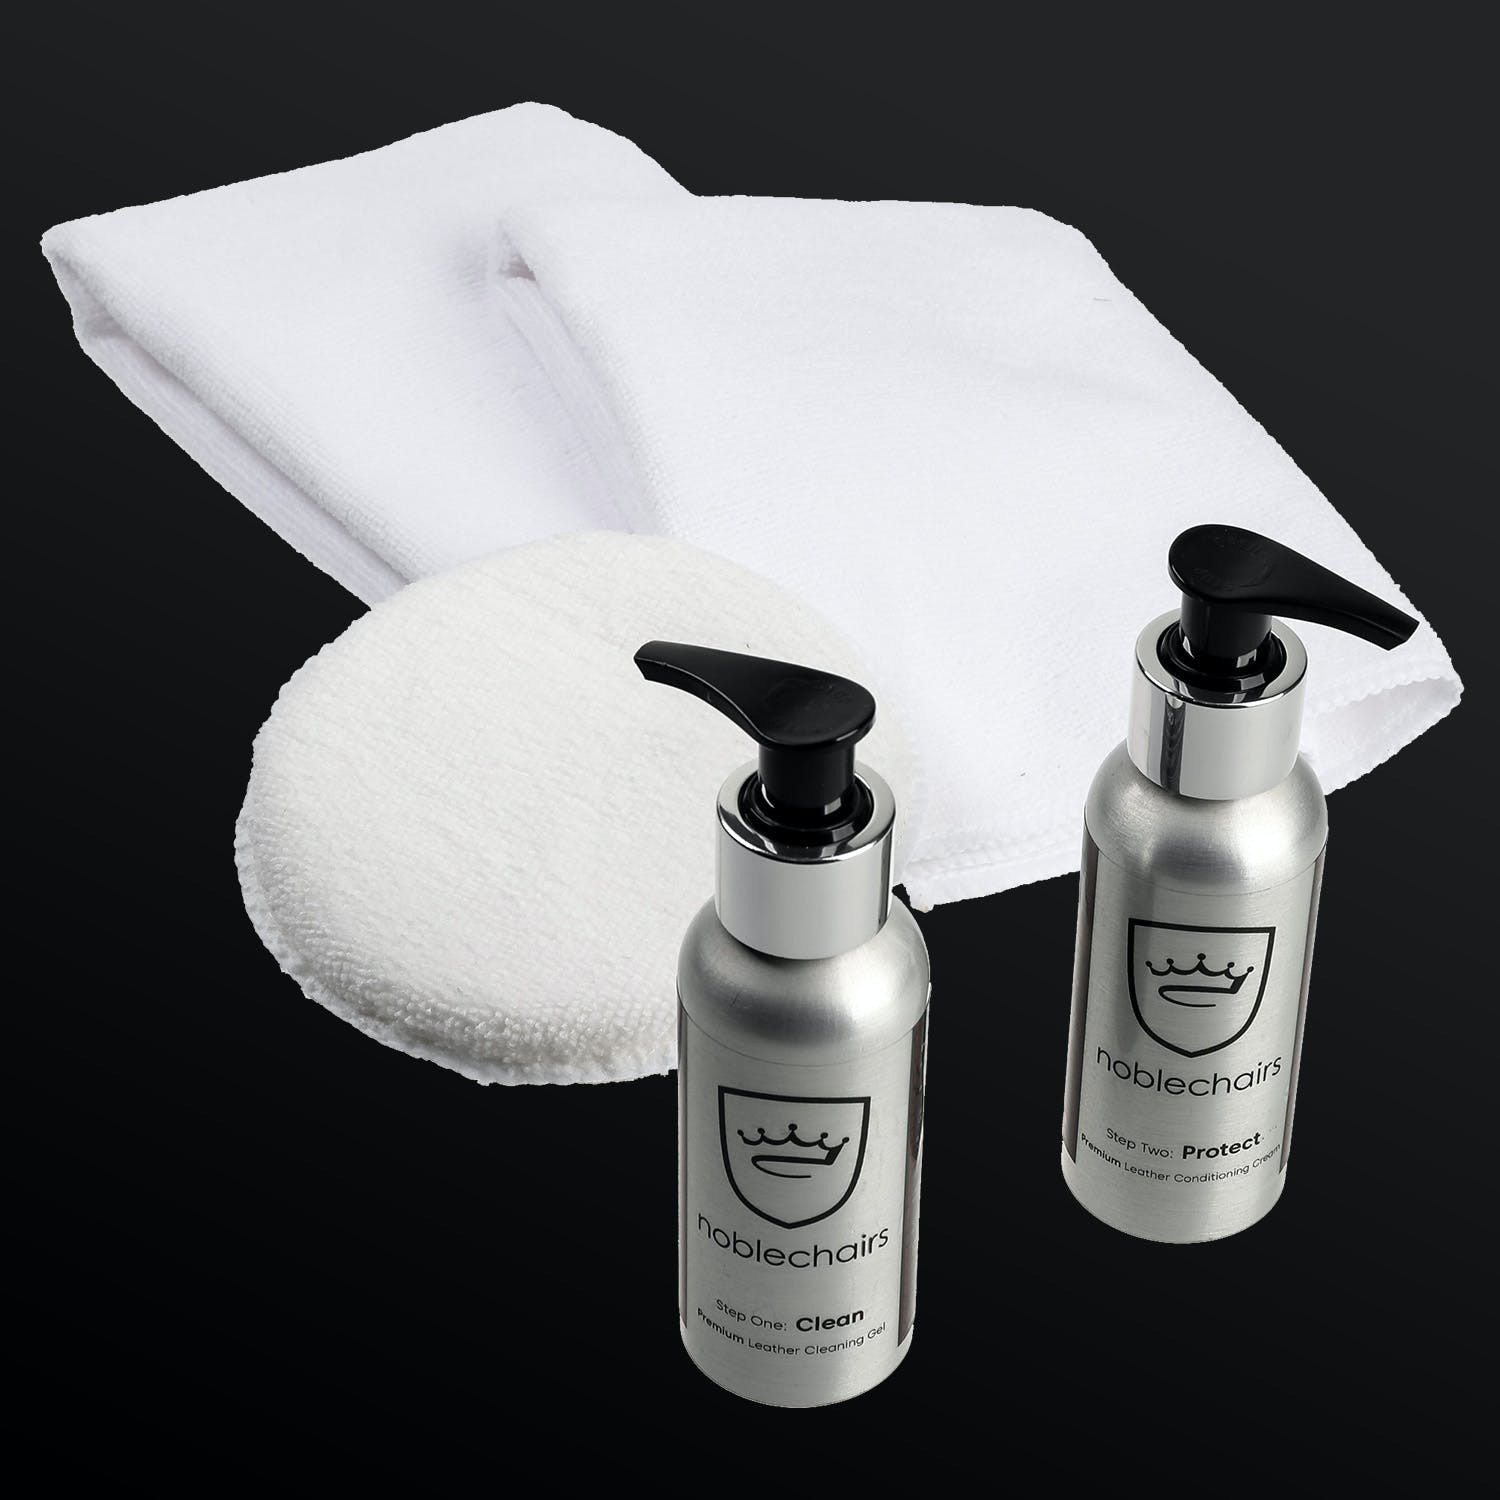 Noblechairs - Premium Cleaning- and Care Kit